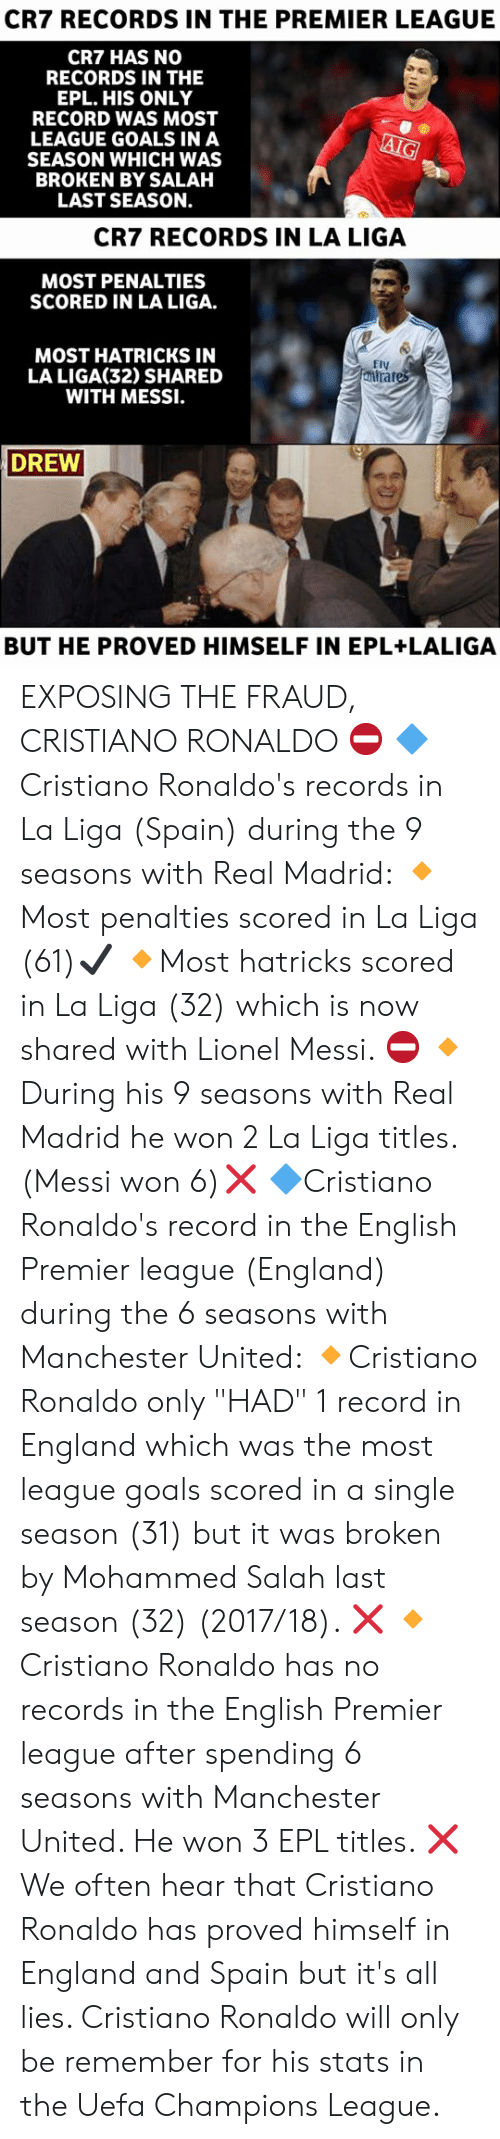 """English Premier League: CR7 RECORDS IN THE PREMIER LEAGUE  CR7 HAS NO  RECORDS IN THE  EPL. HIS ONLY  RECORD WAS MOST  LEAGUE GOALS IN A  SEASON WHICH WAS  BROKEN BY SALAH  LAST SEASON.  CR7 RECORDS IN LA LIGA  MOST PENALTIES  SCORED IN LA LIGA.  MOST HATRICKS IN  LA LIGA(32) SHARED  WITH MESSI.  mirate  DREW  BUT HE PROVED HIMSELF IN EPL+LALIGA EXPOSING THE FRAUD, CRISTIANO RONALDO ⛔  🔷️Cristiano Ronaldo's records in La Liga (Spain) during the 9 seasons with Real Madrid:  🔸️Most penalties scored in La Liga (61)✔  🔸️Most hatricks scored in La Liga (32) which is now shared with Lionel Messi. ⛔  🔸️During his 9 seasons with Real Madrid he won 2 La Liga titles. (Messi won 6)❌  🔷️Cristiano Ronaldo's record in the English Premier league (England) during the 6 seasons with Manchester United:  🔸️Cristiano Ronaldo only """"HAD"""" 1 record in England which was the most league goals scored in a single season (31) but it was broken by Mohammed Salah last season (32) (2017/18). ❌  🔸️Cristiano Ronaldo has no records in the English Premier league after spending 6 seasons with Manchester United. He won 3 EPL titles.  ❌  We often hear that Cristiano Ronaldo has proved himself in England and Spain but it's all lies. Cristiano Ronaldo will only be remember for his stats in the Uefa Champions League."""